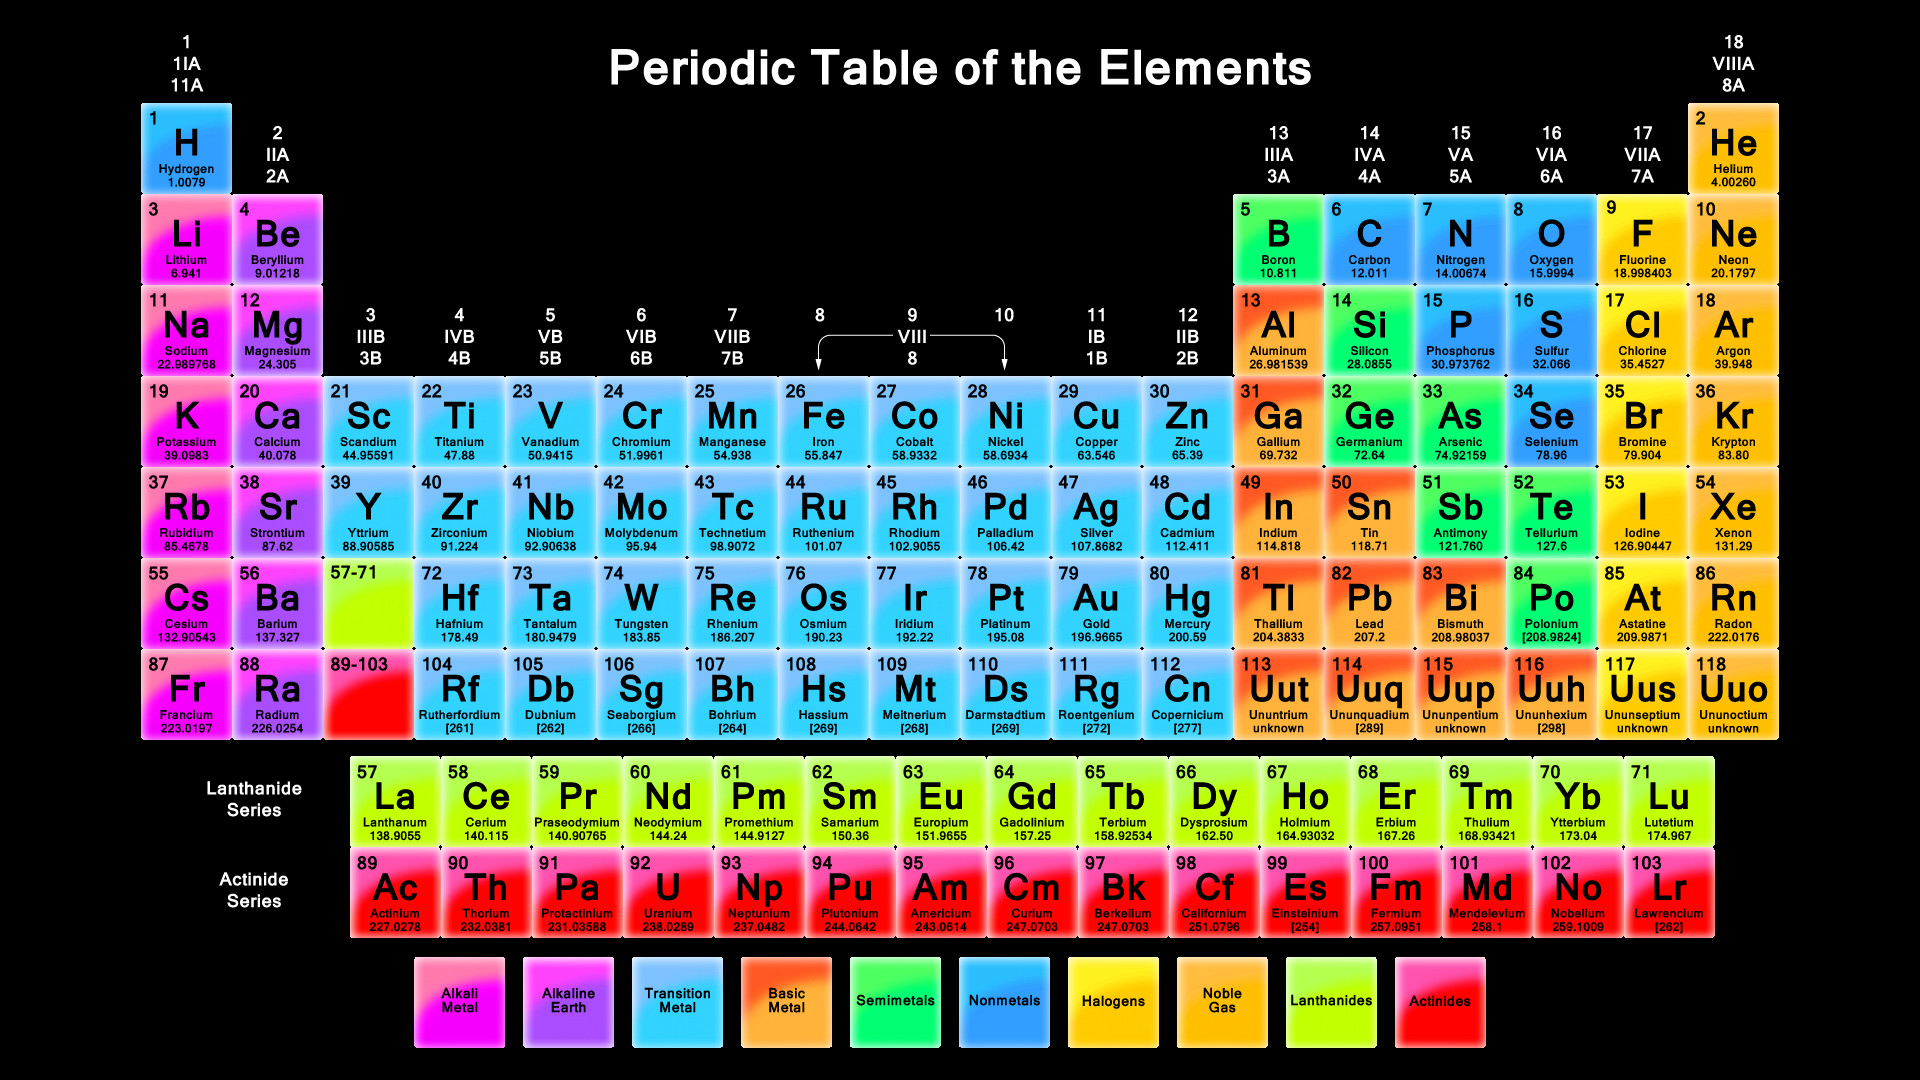 Periodic table wallpaper high resolution 73 images 1920x1080 the periodic table wallpaper black background urtaz Choice Image